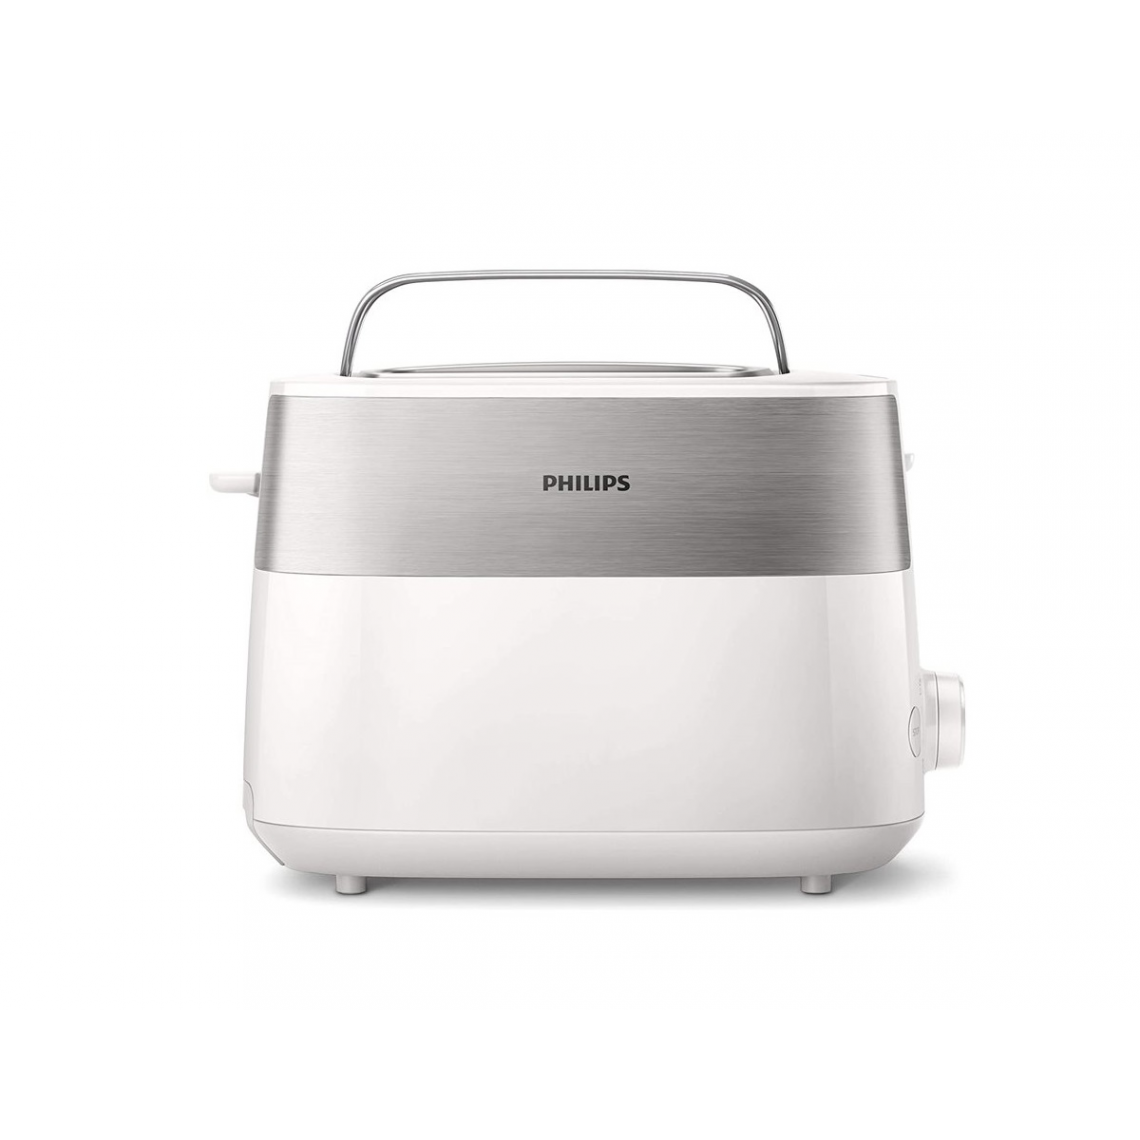 Philips Grille-pain Daily collection HD2516/00 - Blanc